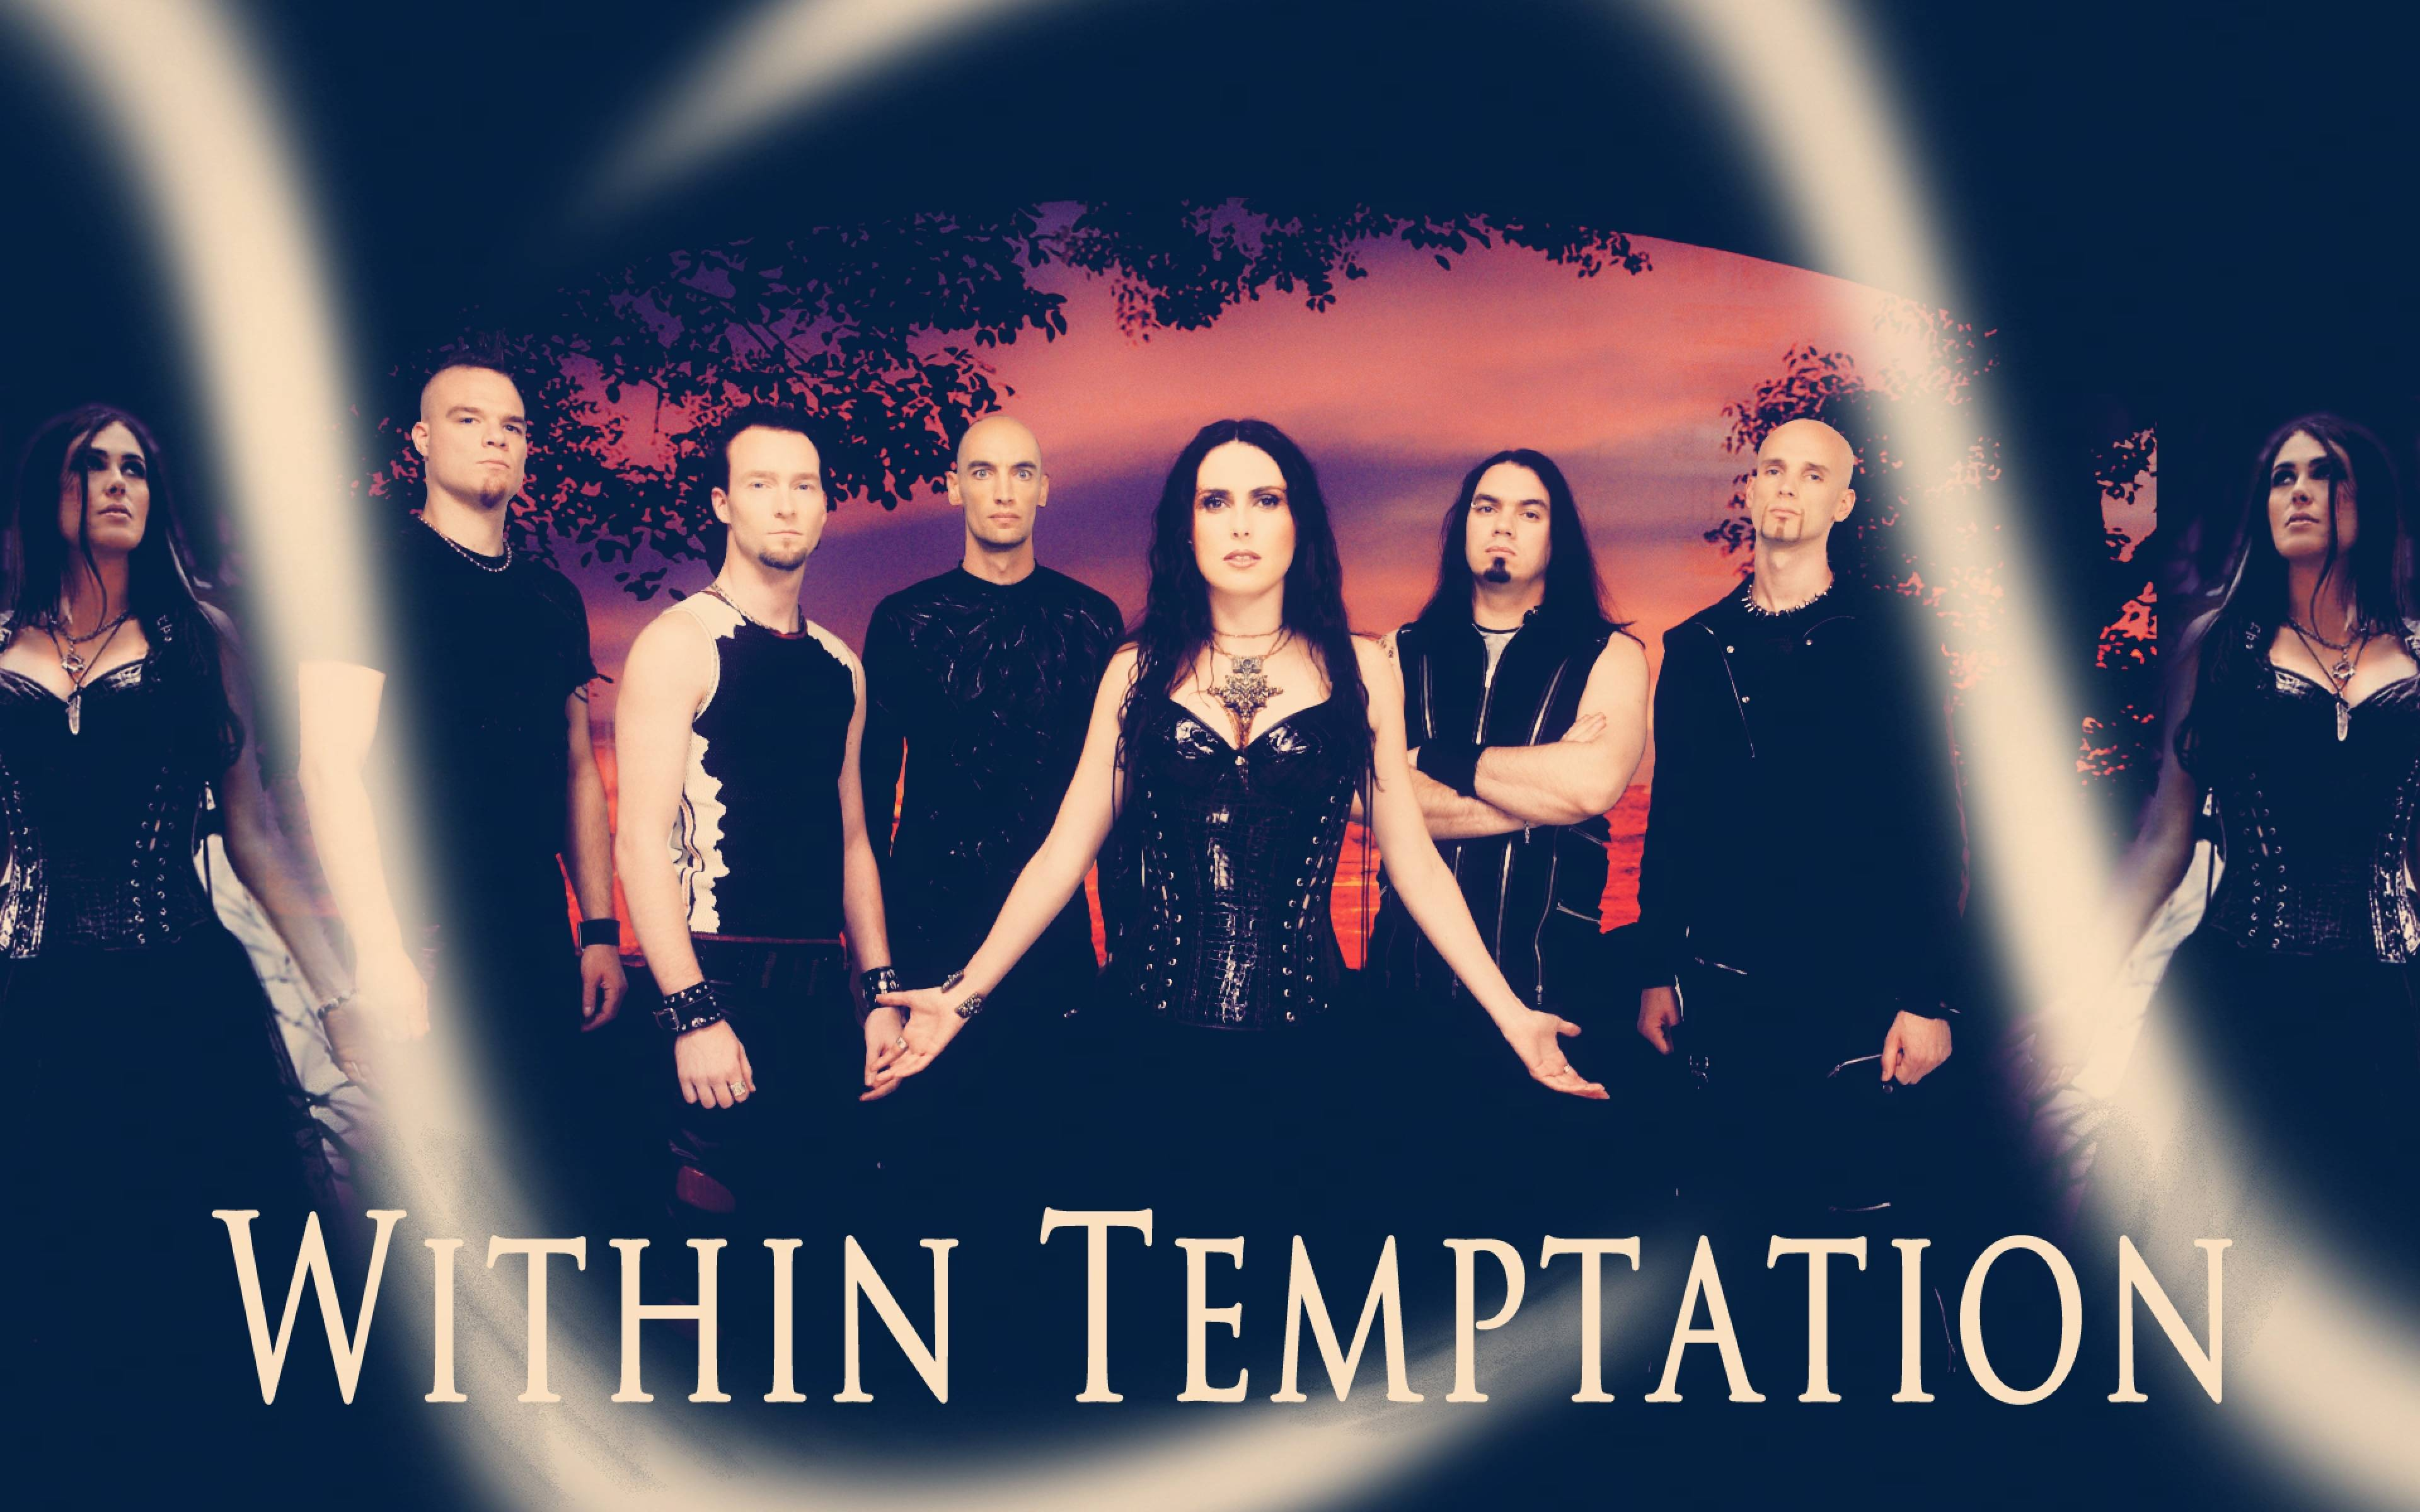 Download Wallpapers 3840x2400 within temptation, band, members